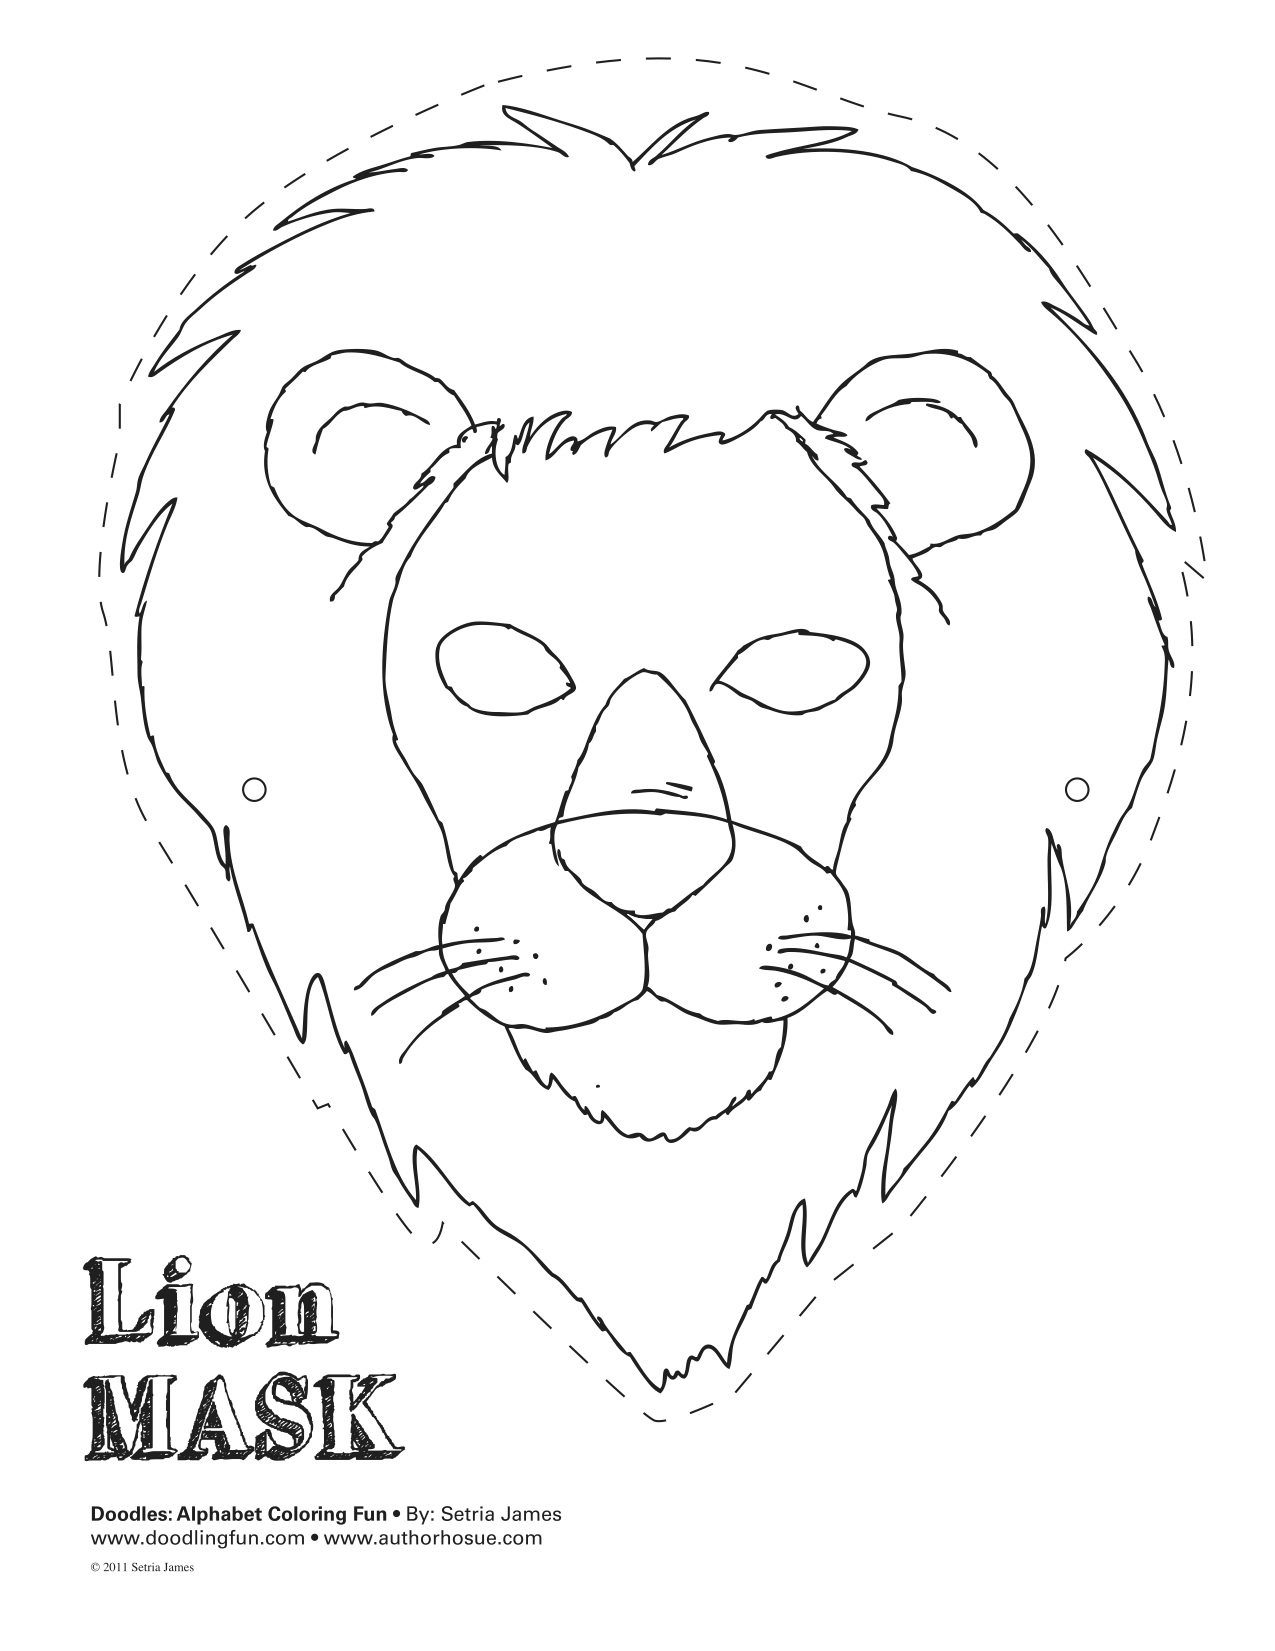 Lion Mask Doodles Coloring Fun